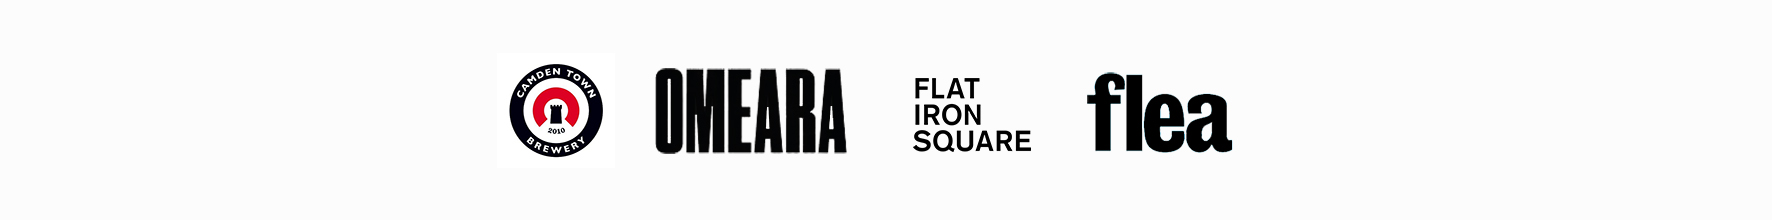 NEW NEW STRIP.jpg